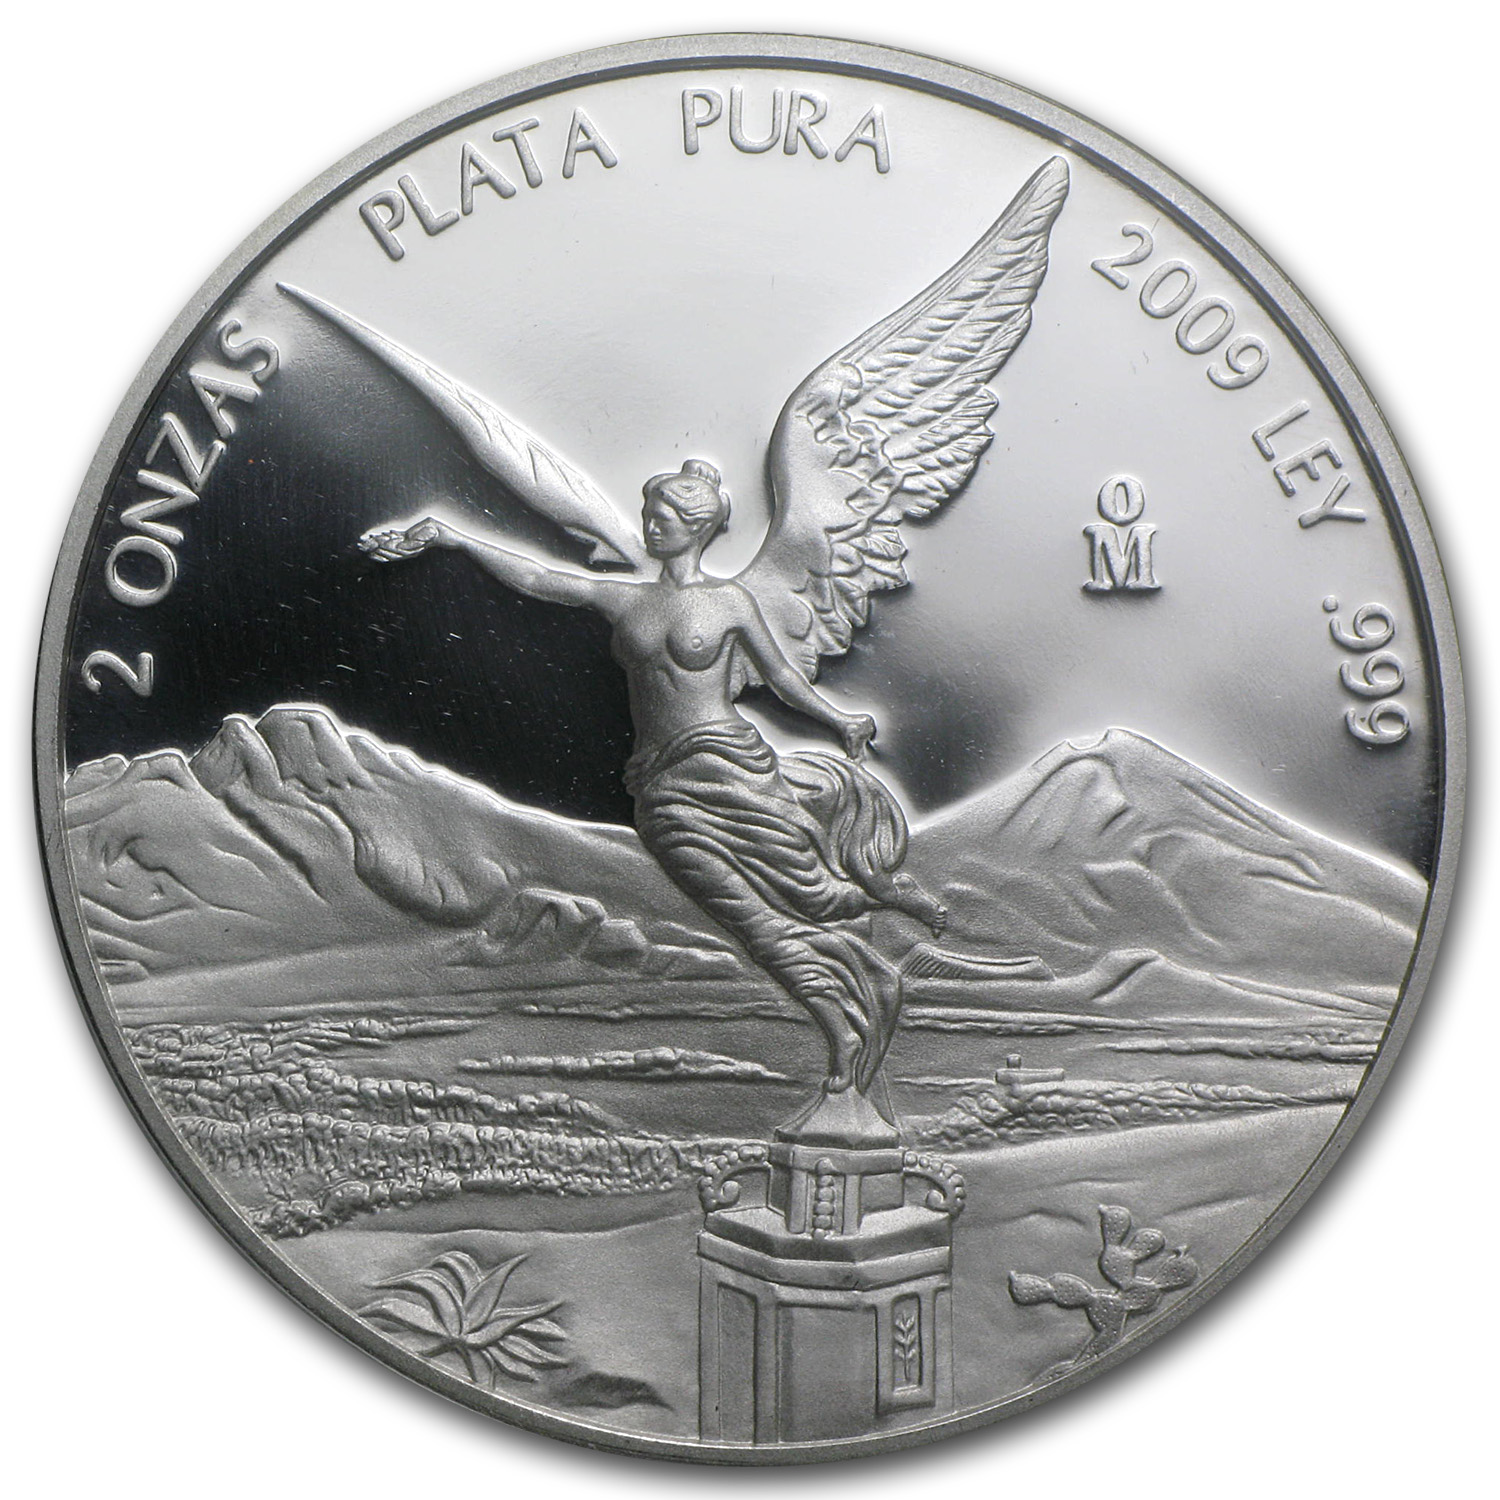 2009 2 oz Silver Mexican Libertad Proof (In Capsule)